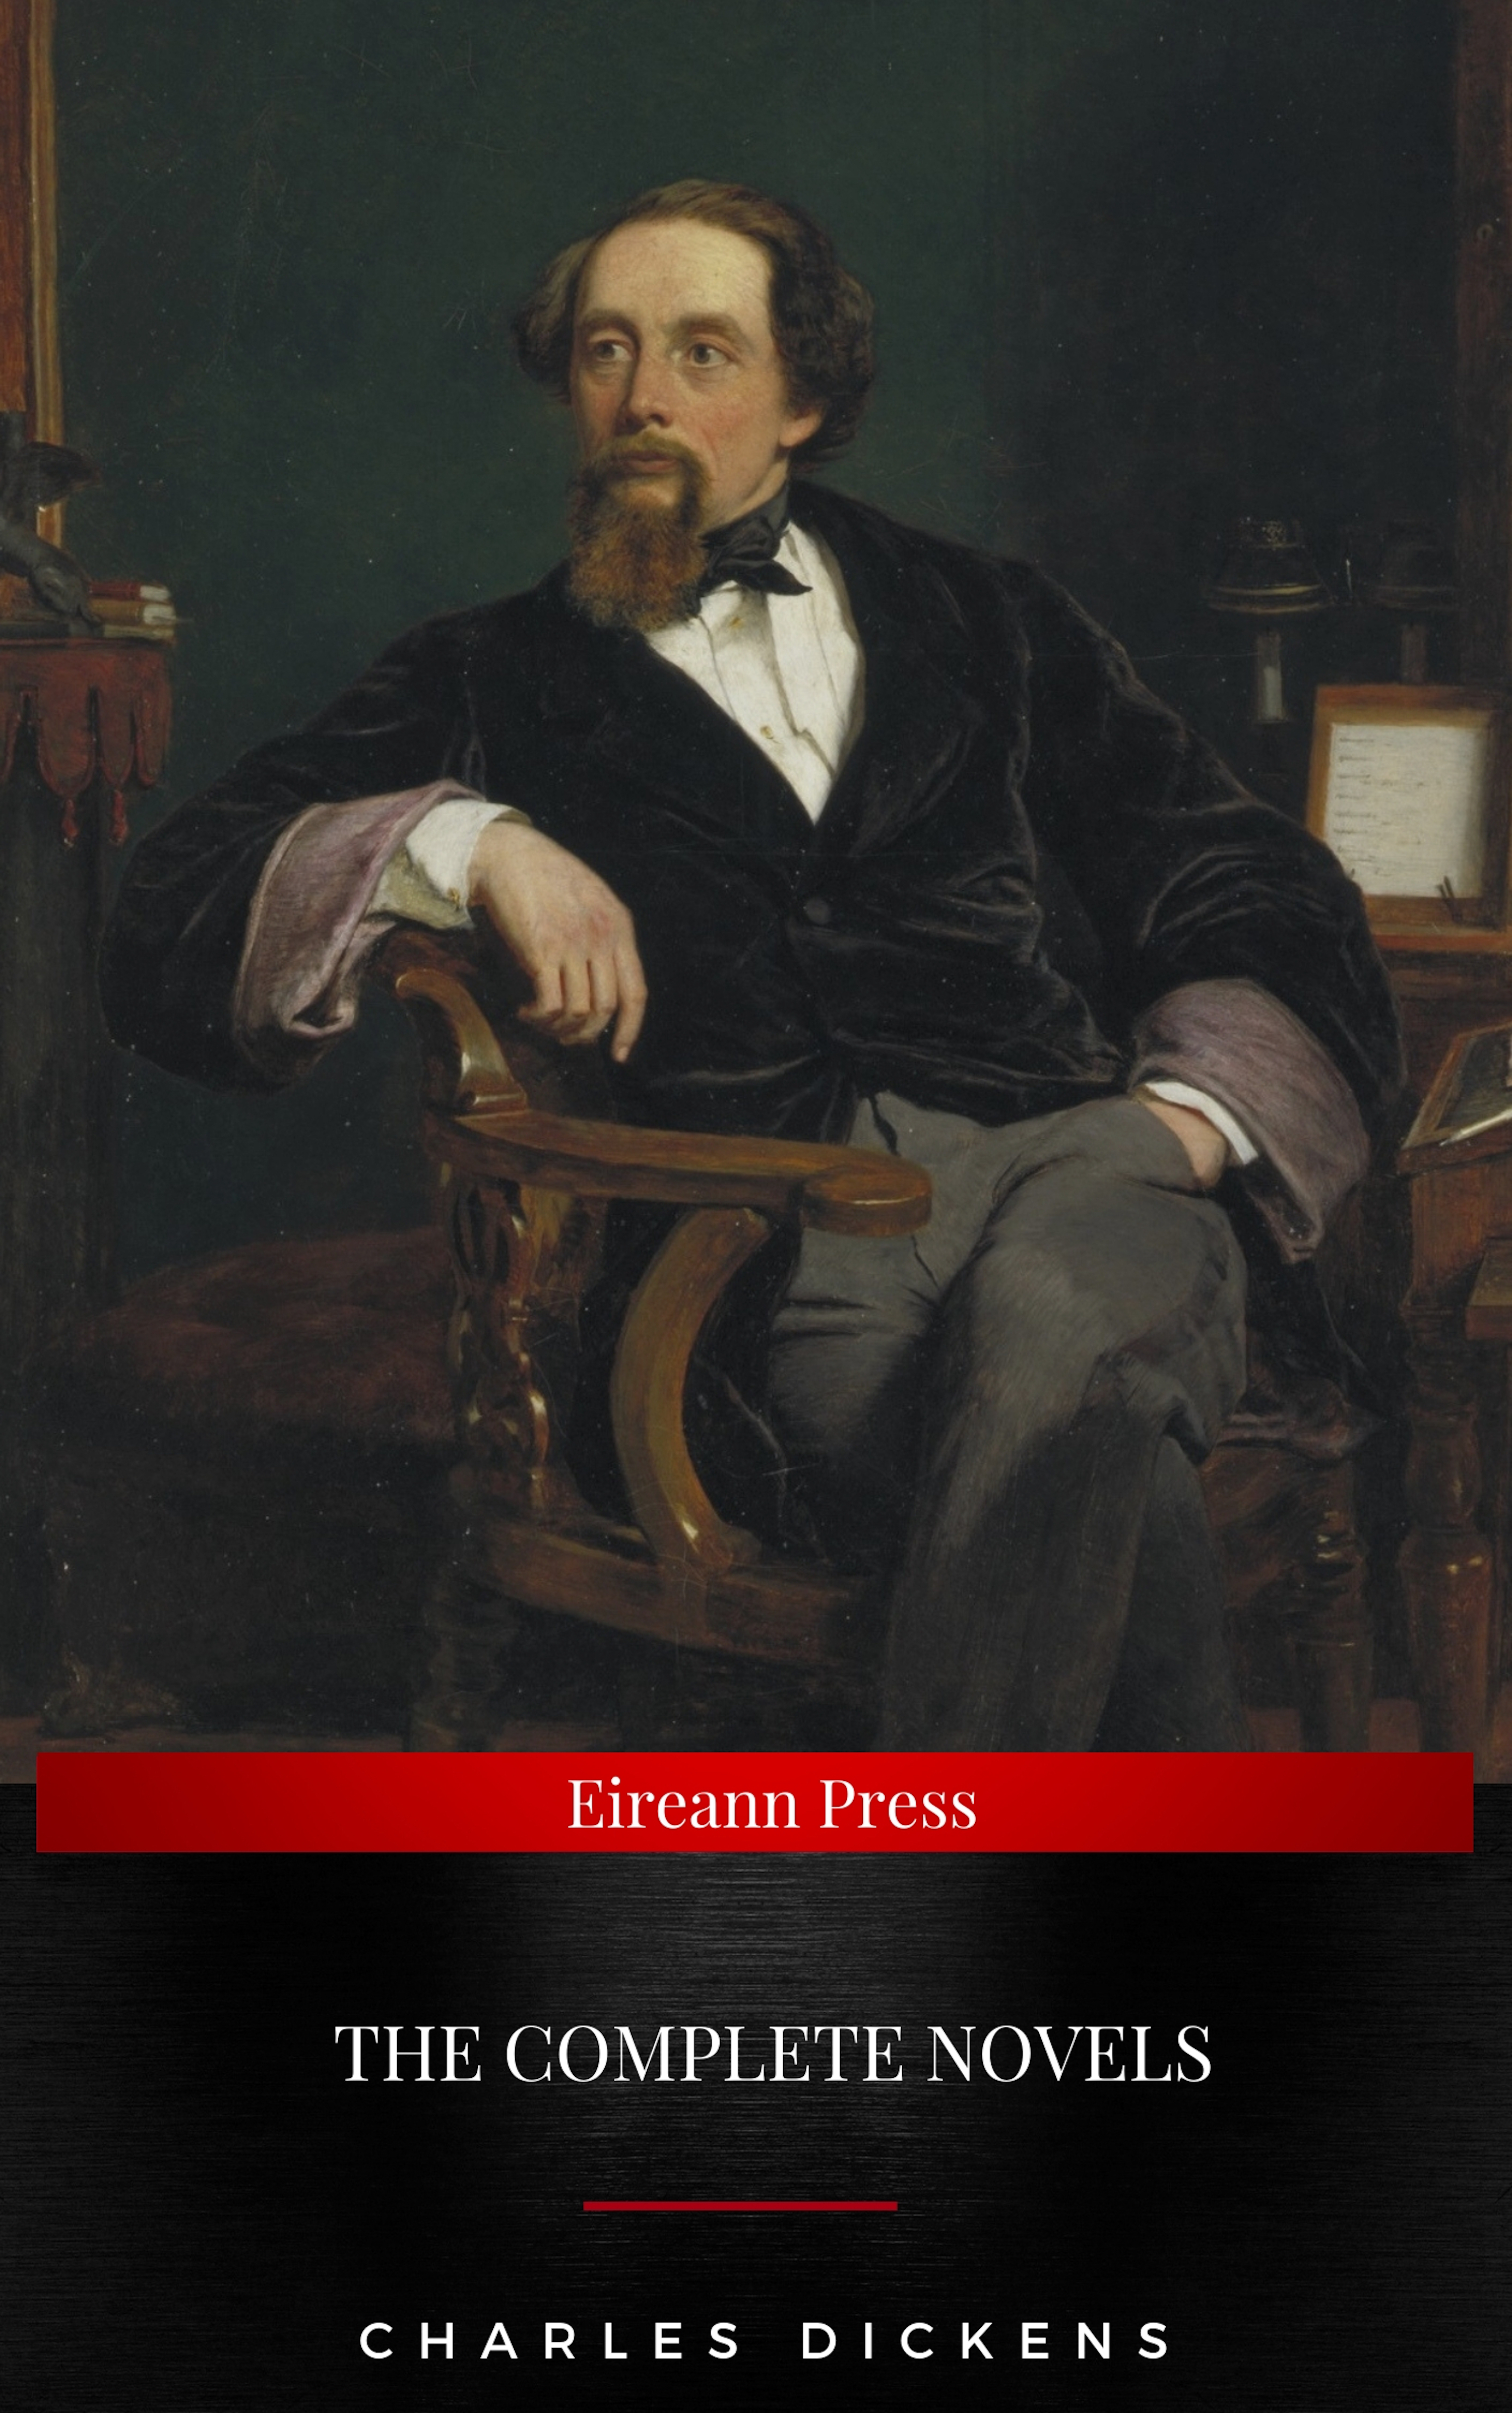 Charles Dickens Charles Dickens: The Complete Novels (Golden Deer Classics) charles 1812 1870 dickens the charles dickens collection